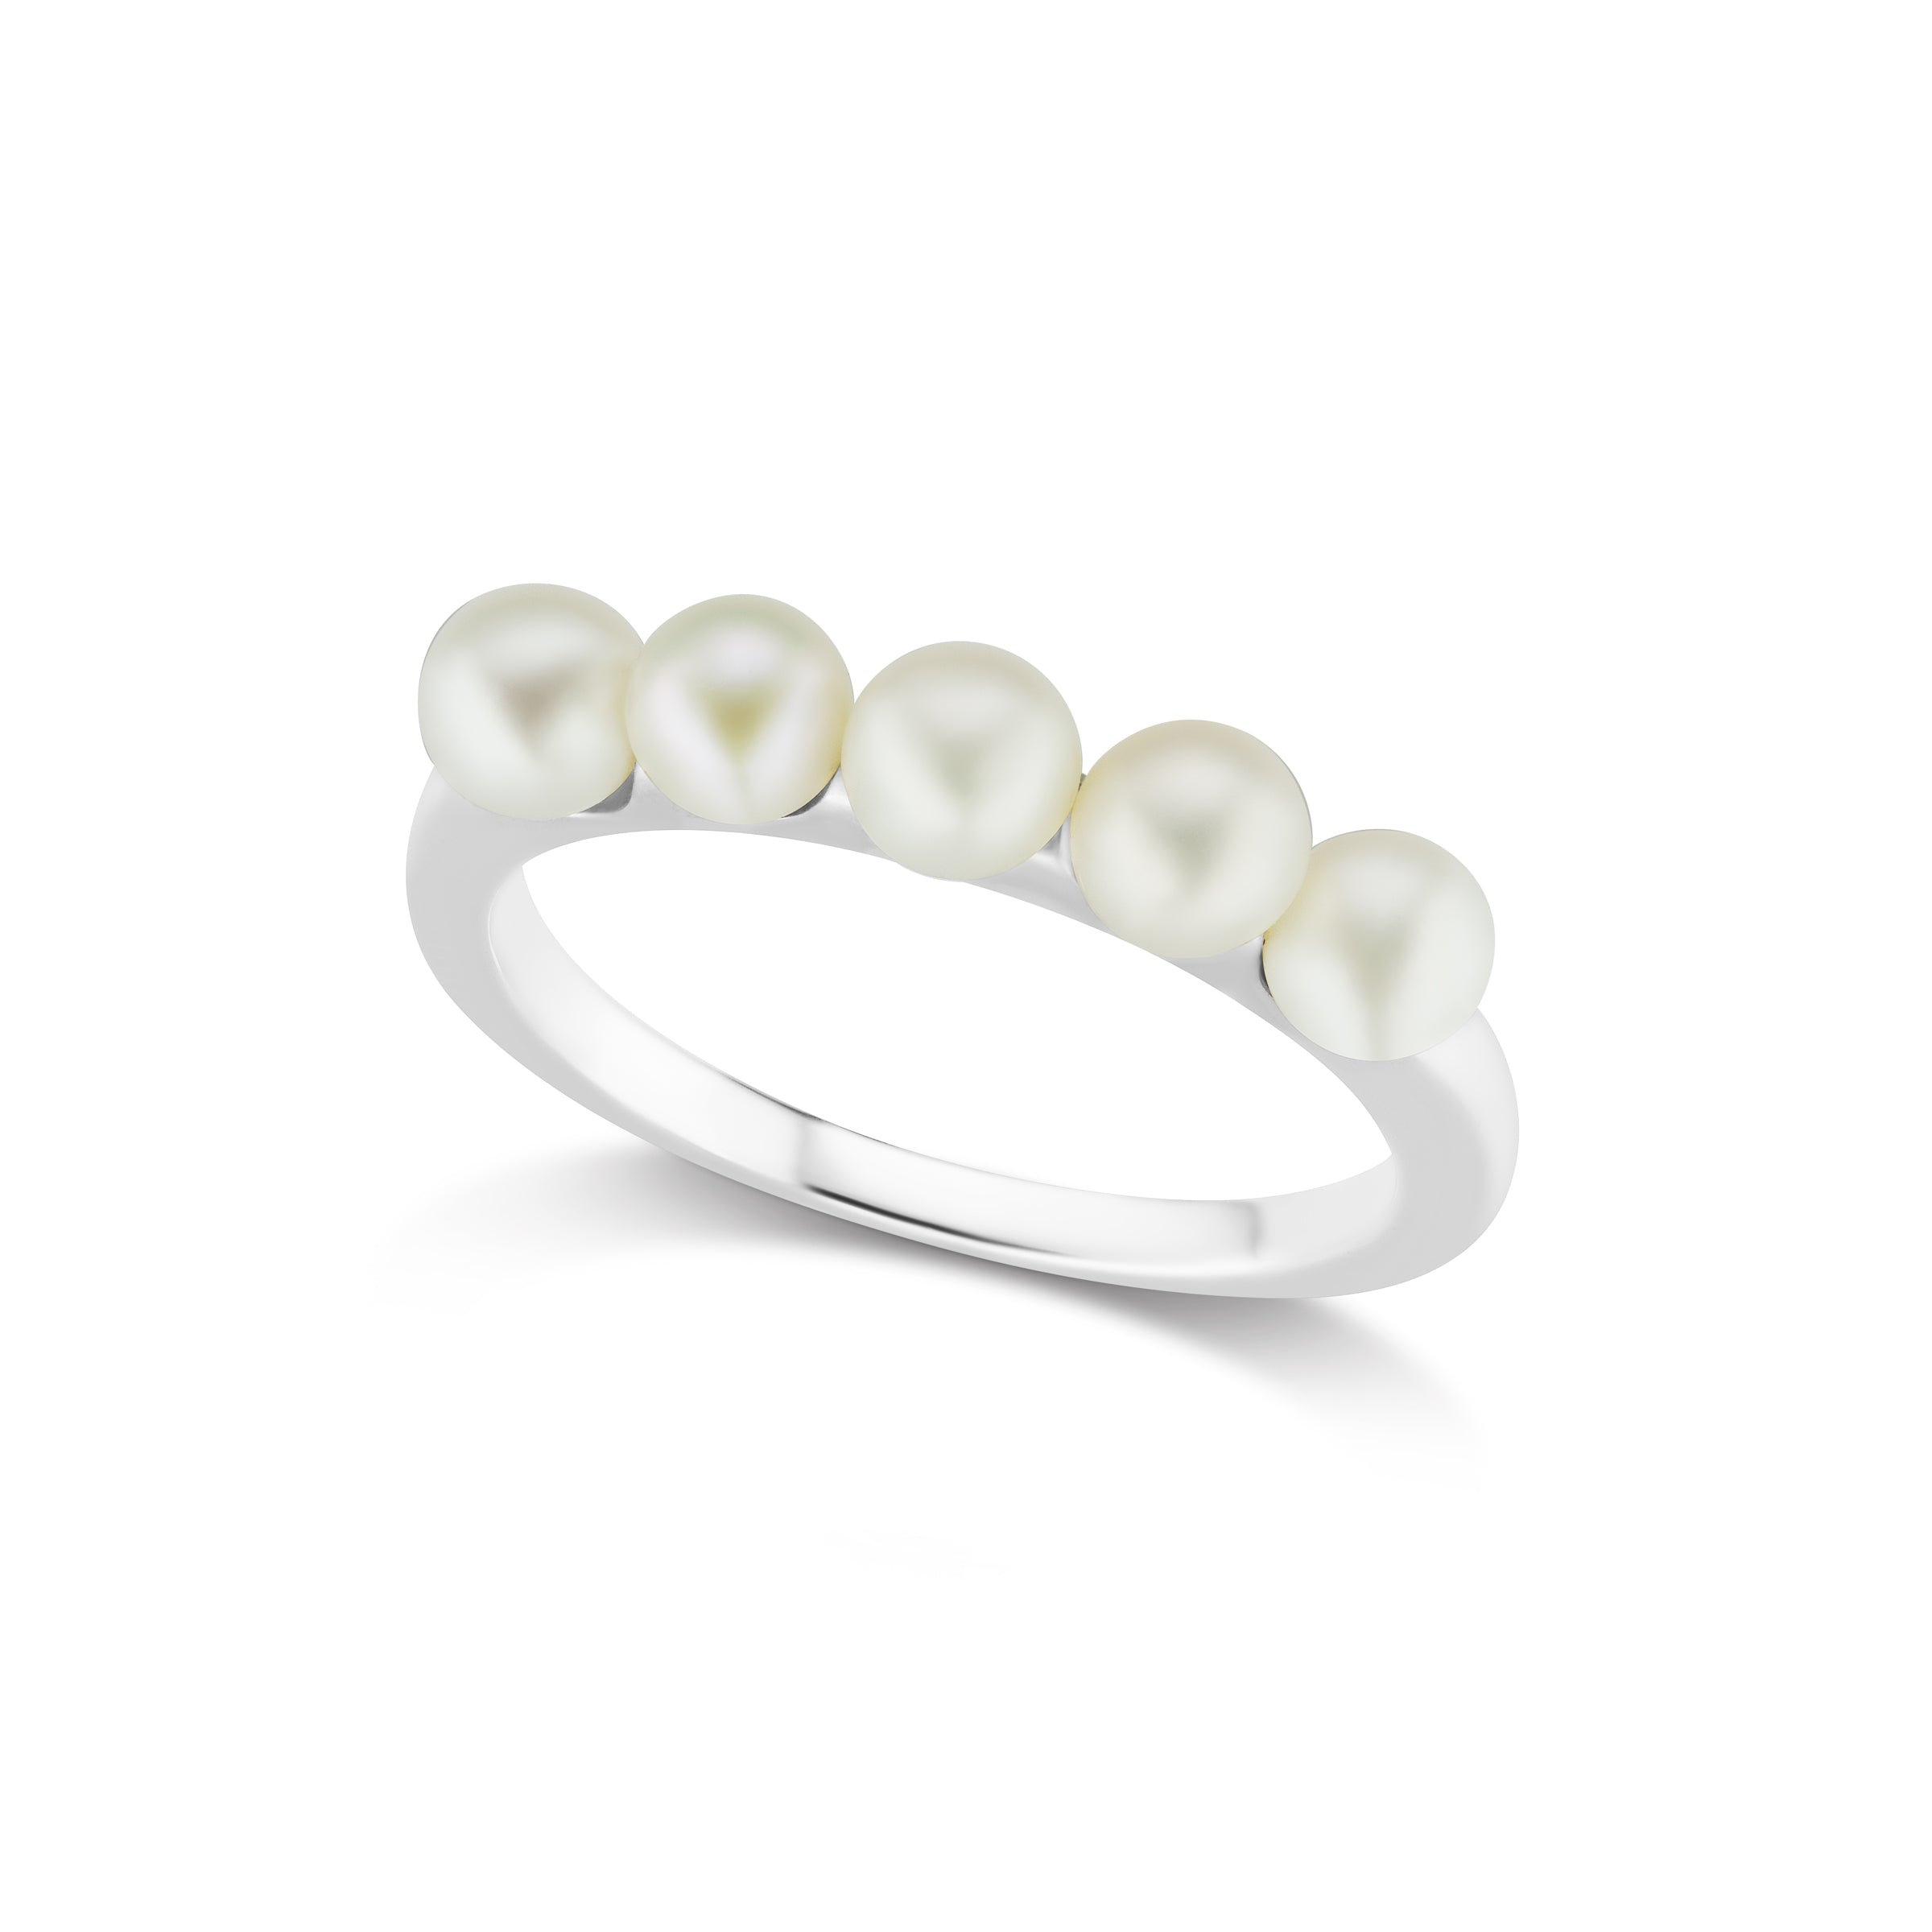 The Silver Multi Pearl Ring